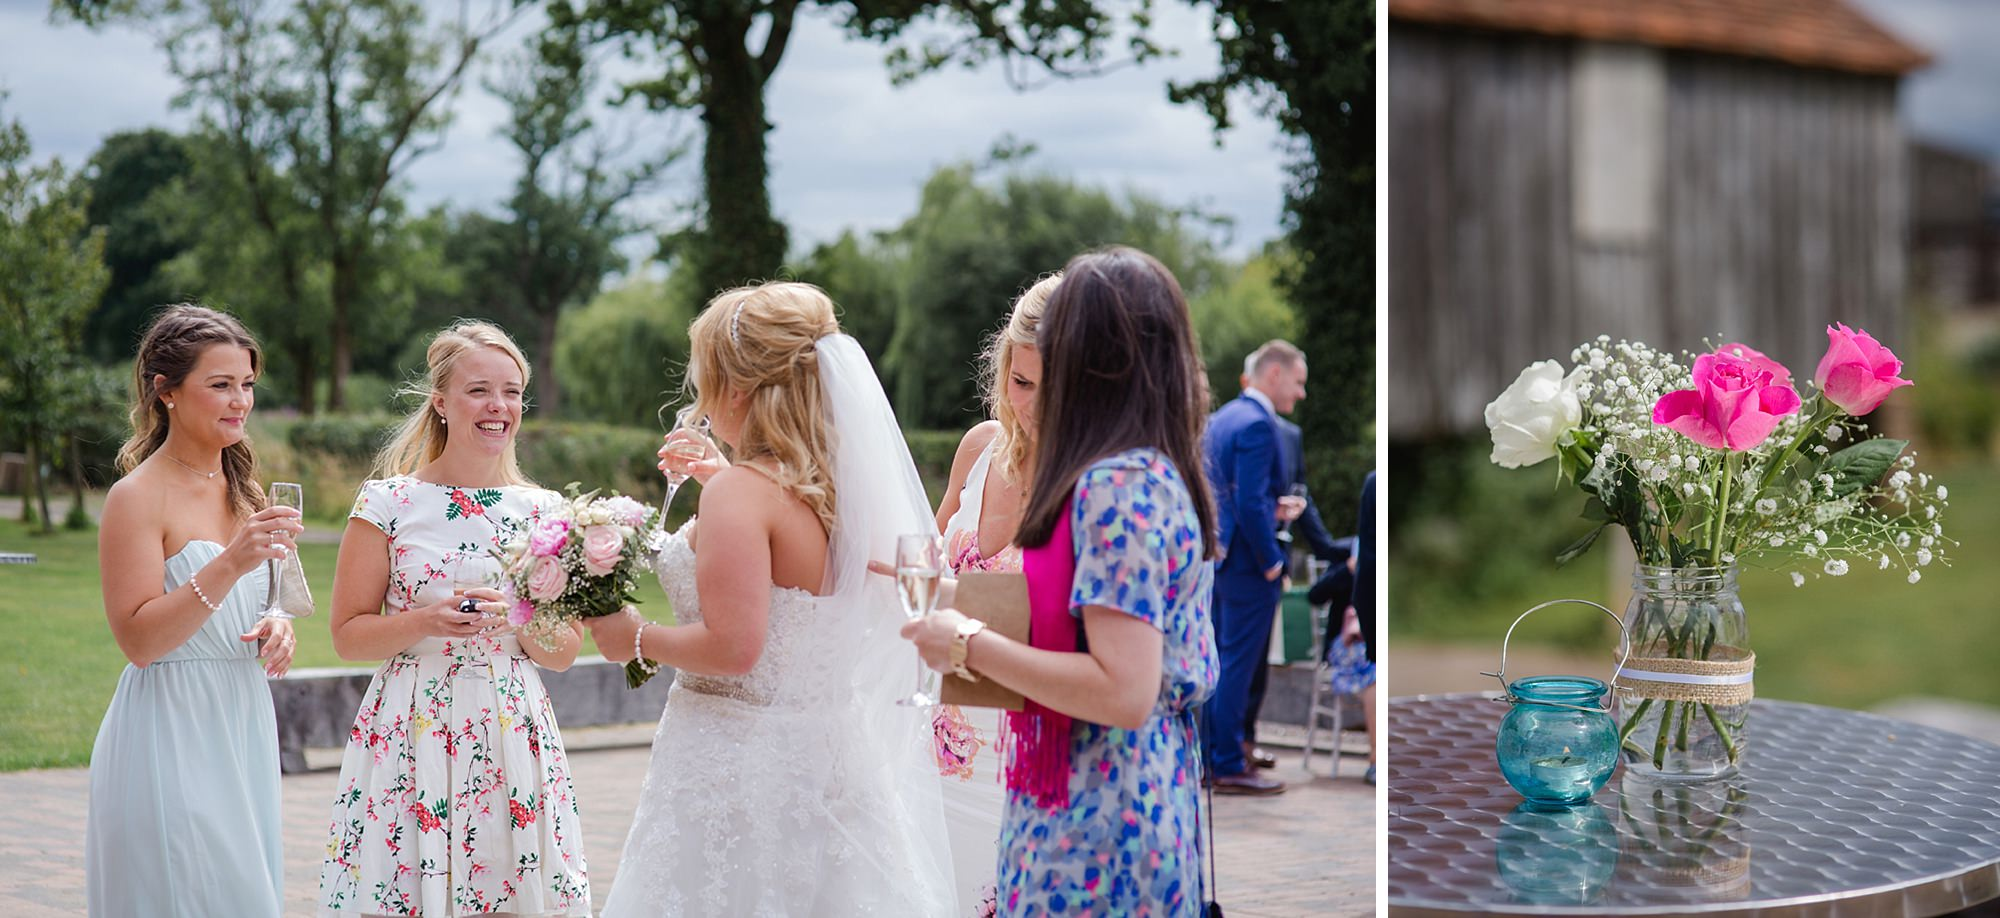 Old Greens Barn Newdigate wedding photography friends of bride